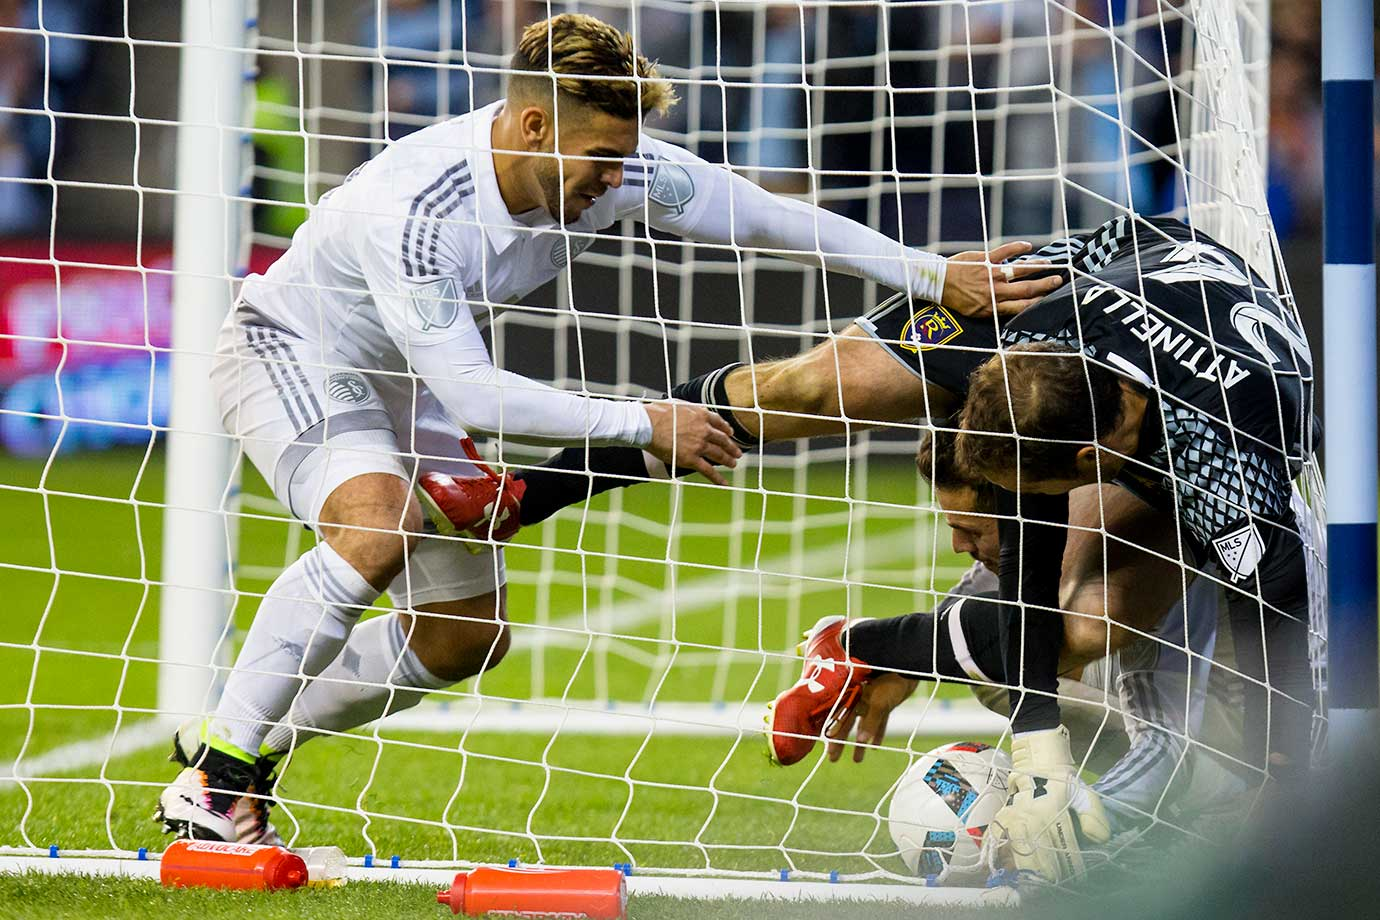 Dom Dwyer of Sporting Kansas City pushes Jeff Attinella of Real Salt Lake over Diego Rubio of Sporting Kansas City after Diego Rubio scored on a penalty kick.